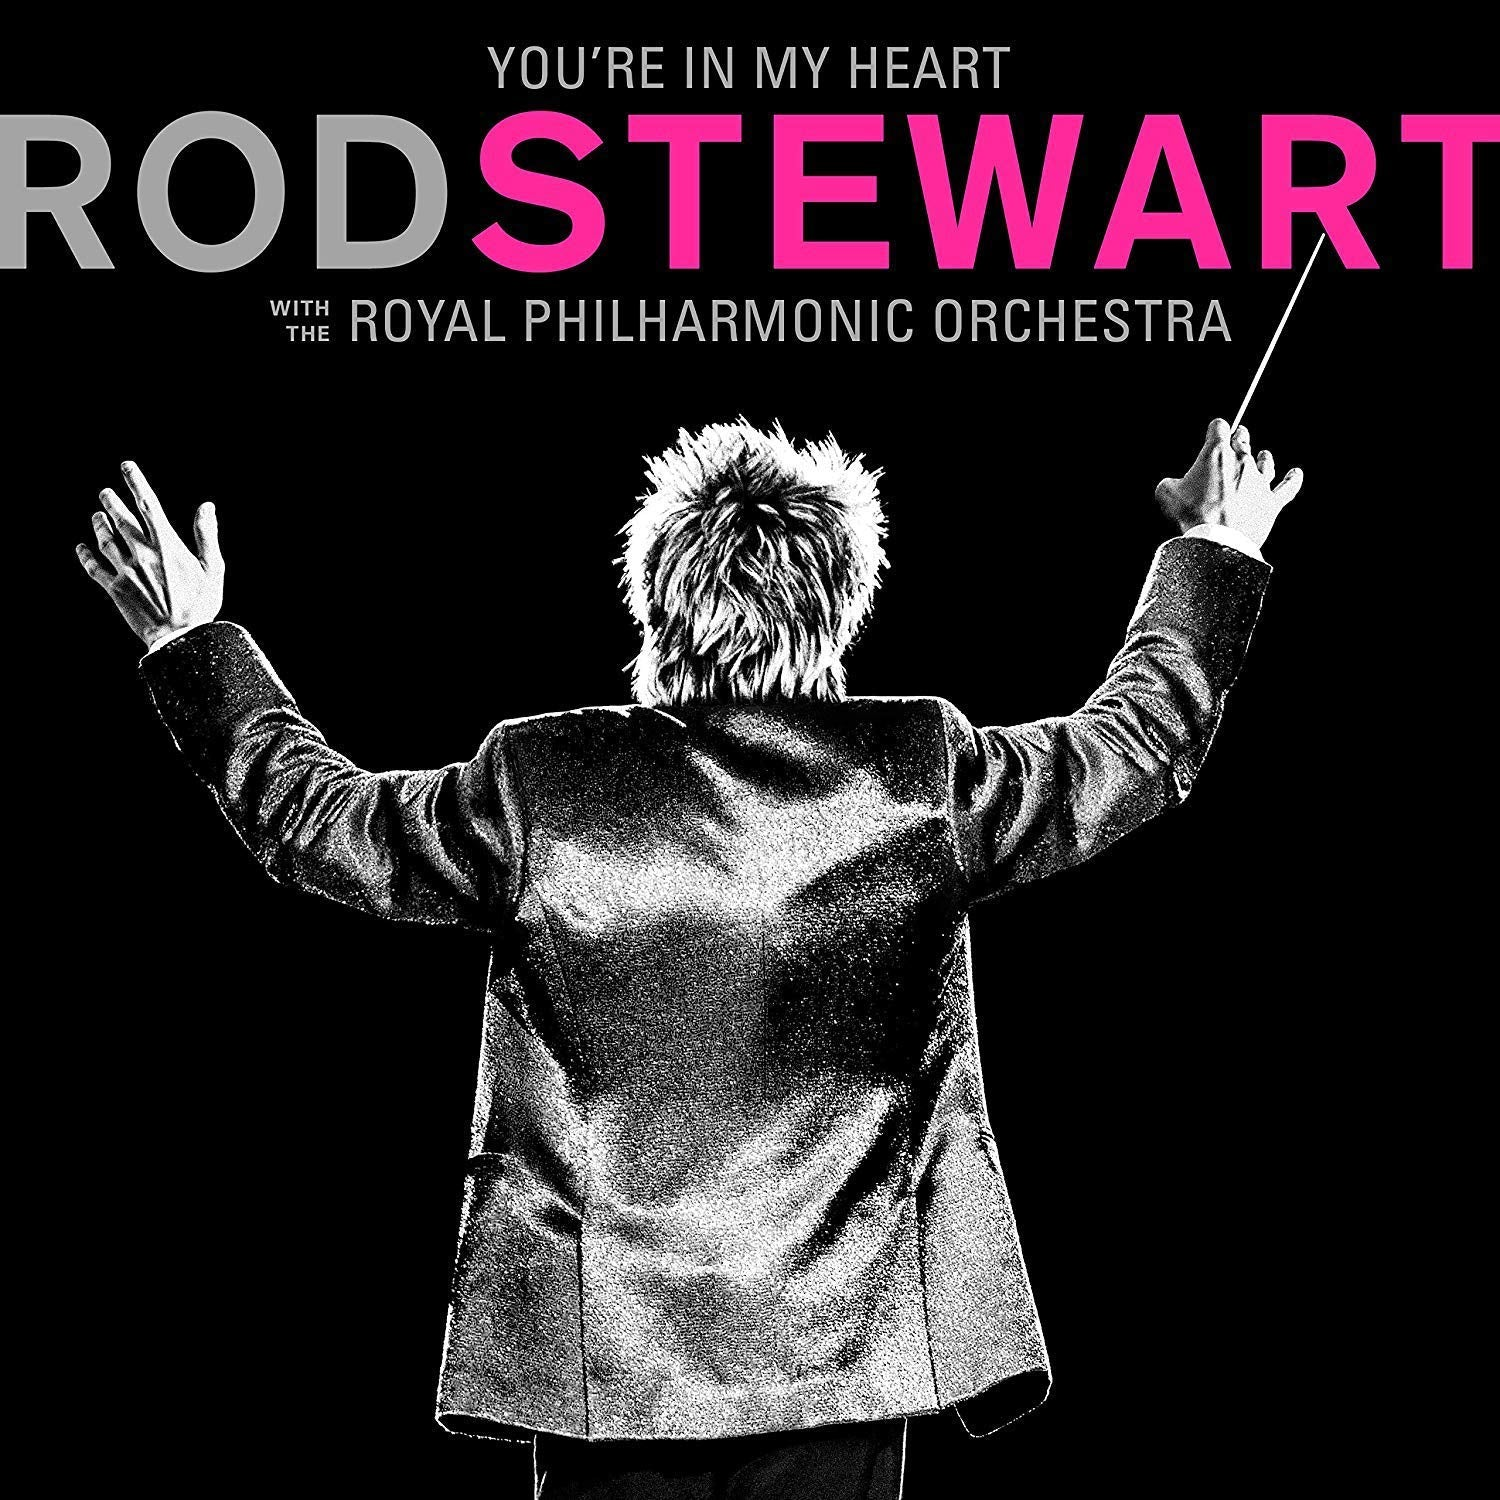 You're in My Heart: - Rod Stewart with The Royal Philharmonic Orchestra [2 CD] OUT 22.11.19 PRE-ORDER NOW